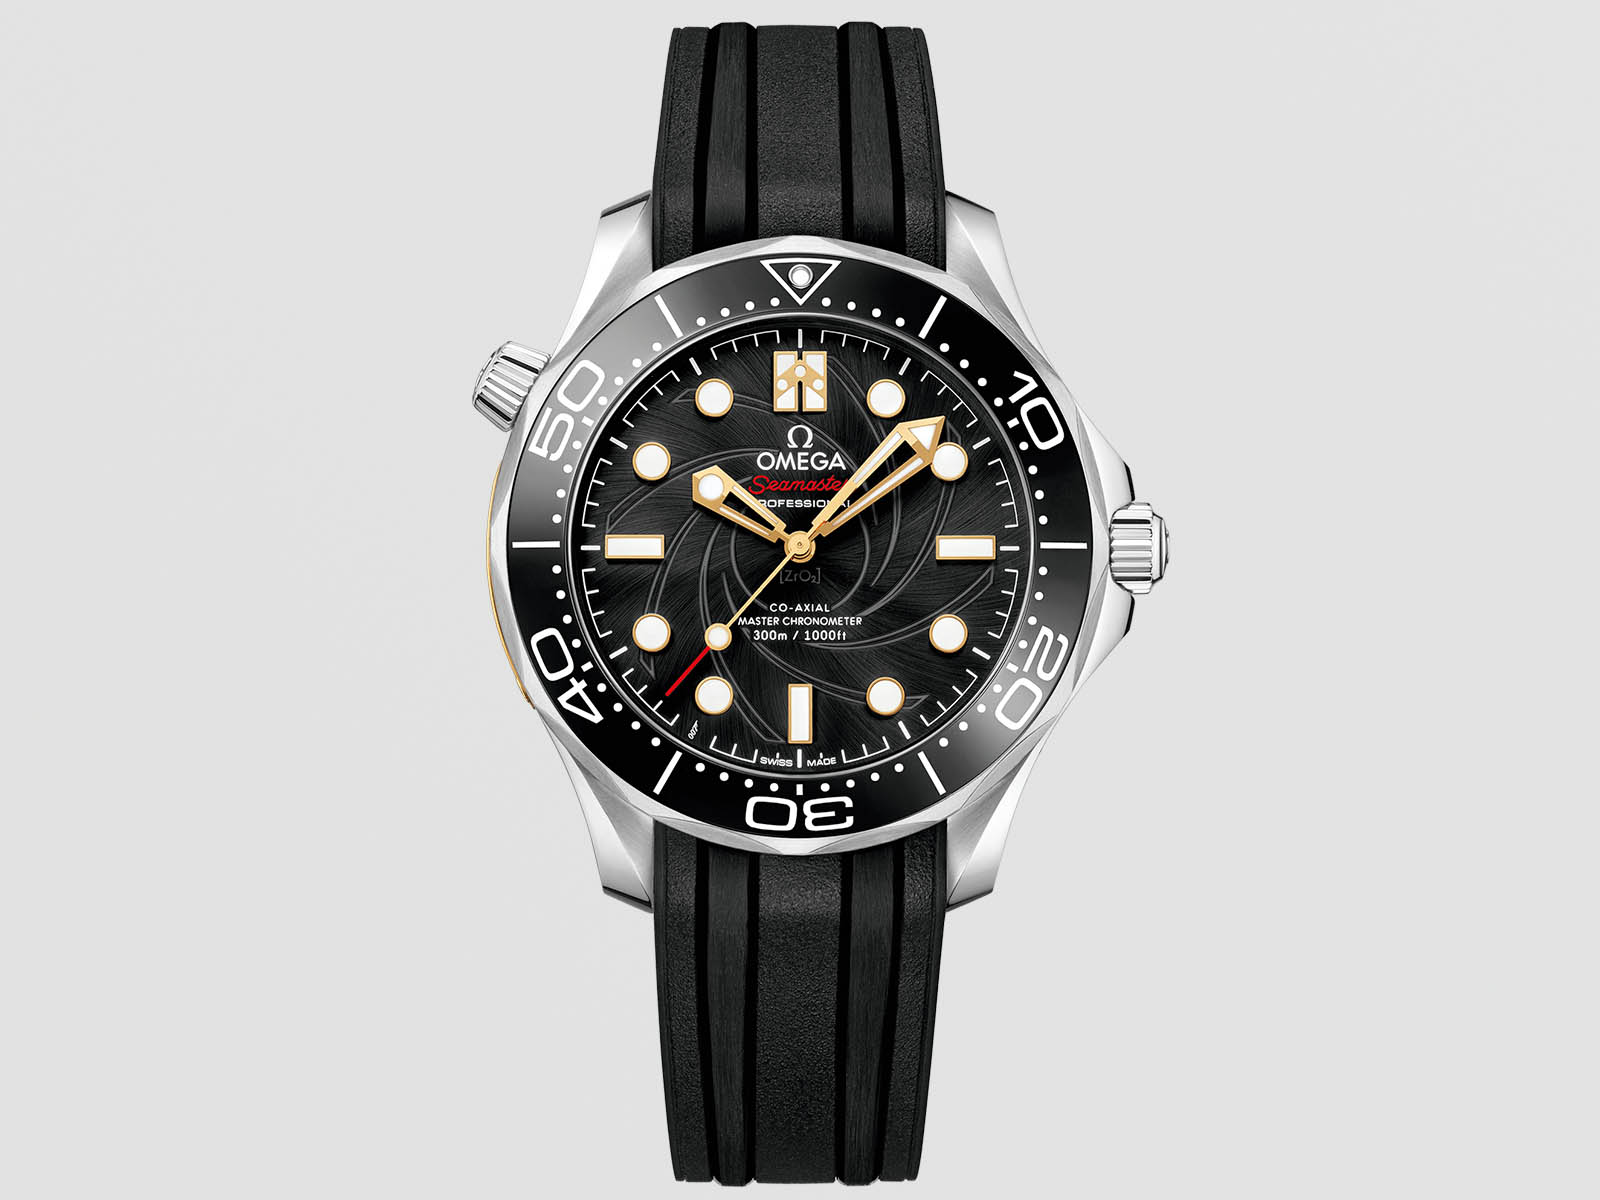 210-22-42-20-01-003-omega-seamaster-diver-300m-omega-co-axial-master-chronometer-42-mm-1.jpg